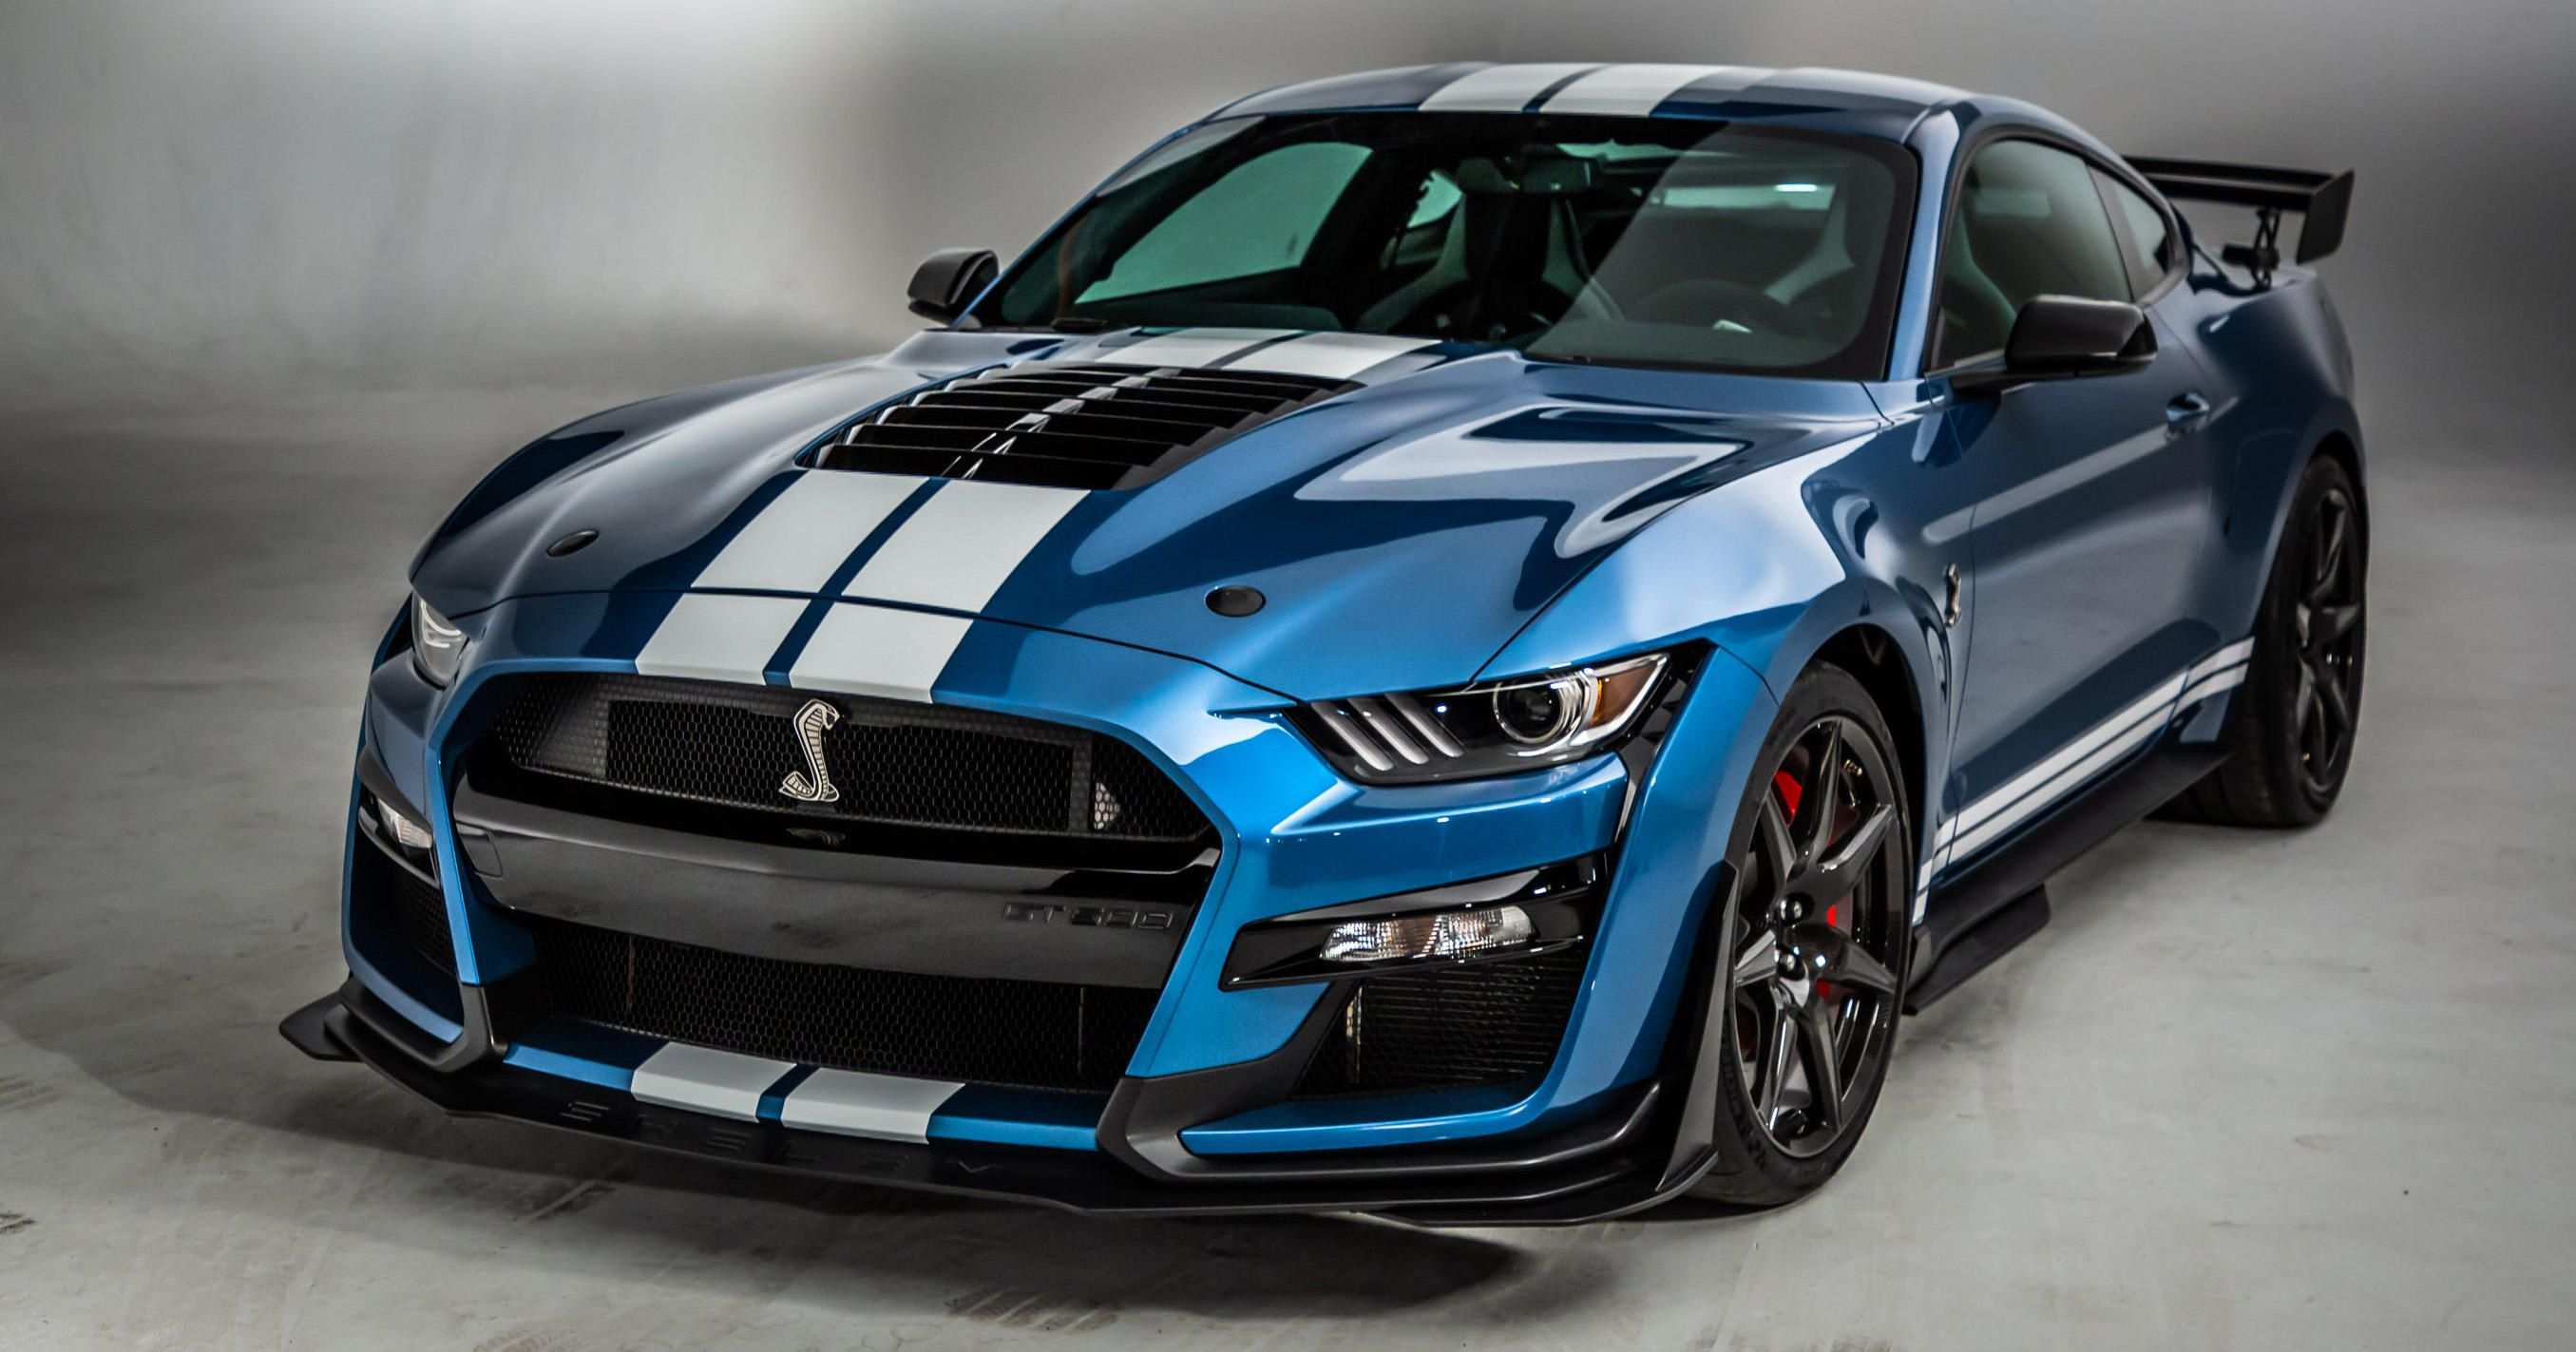 76 All New Ford Gt500 Mustang 2020 Price Design And Review